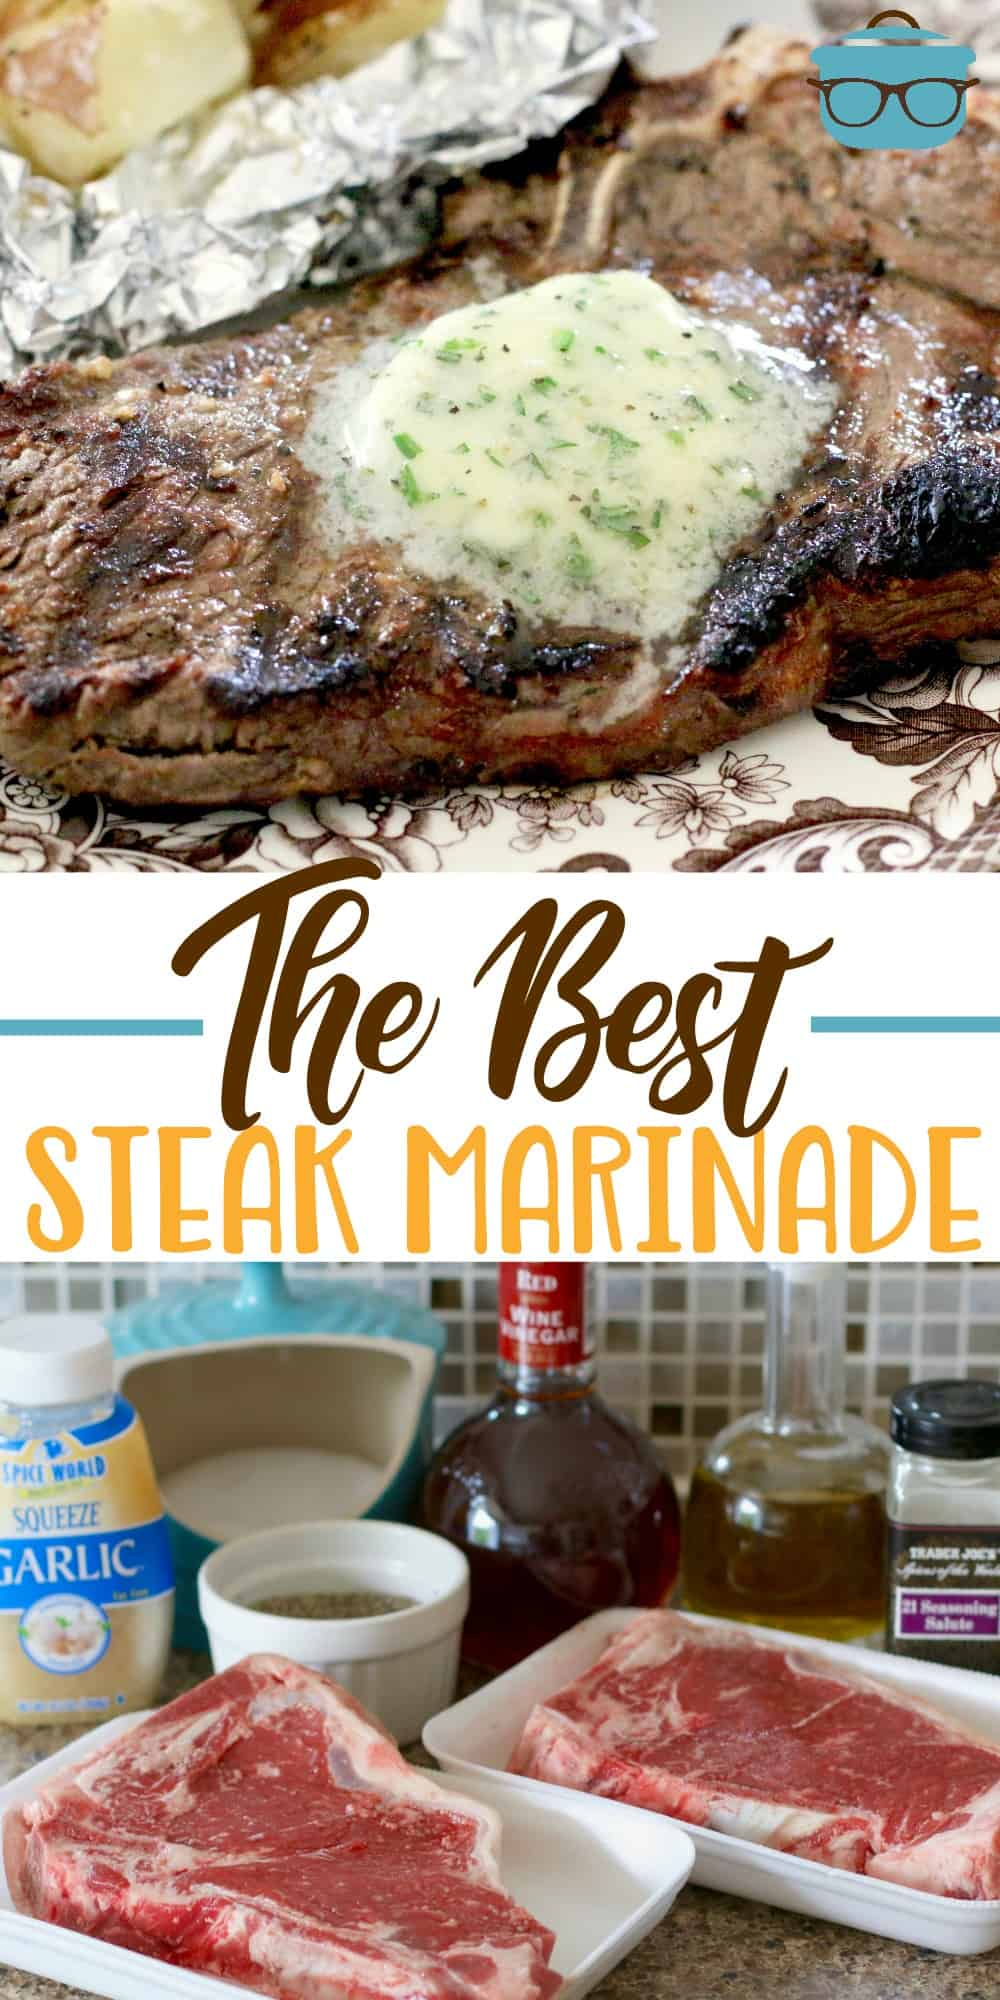 The Best Steak Marinade recipe from The Country Cook